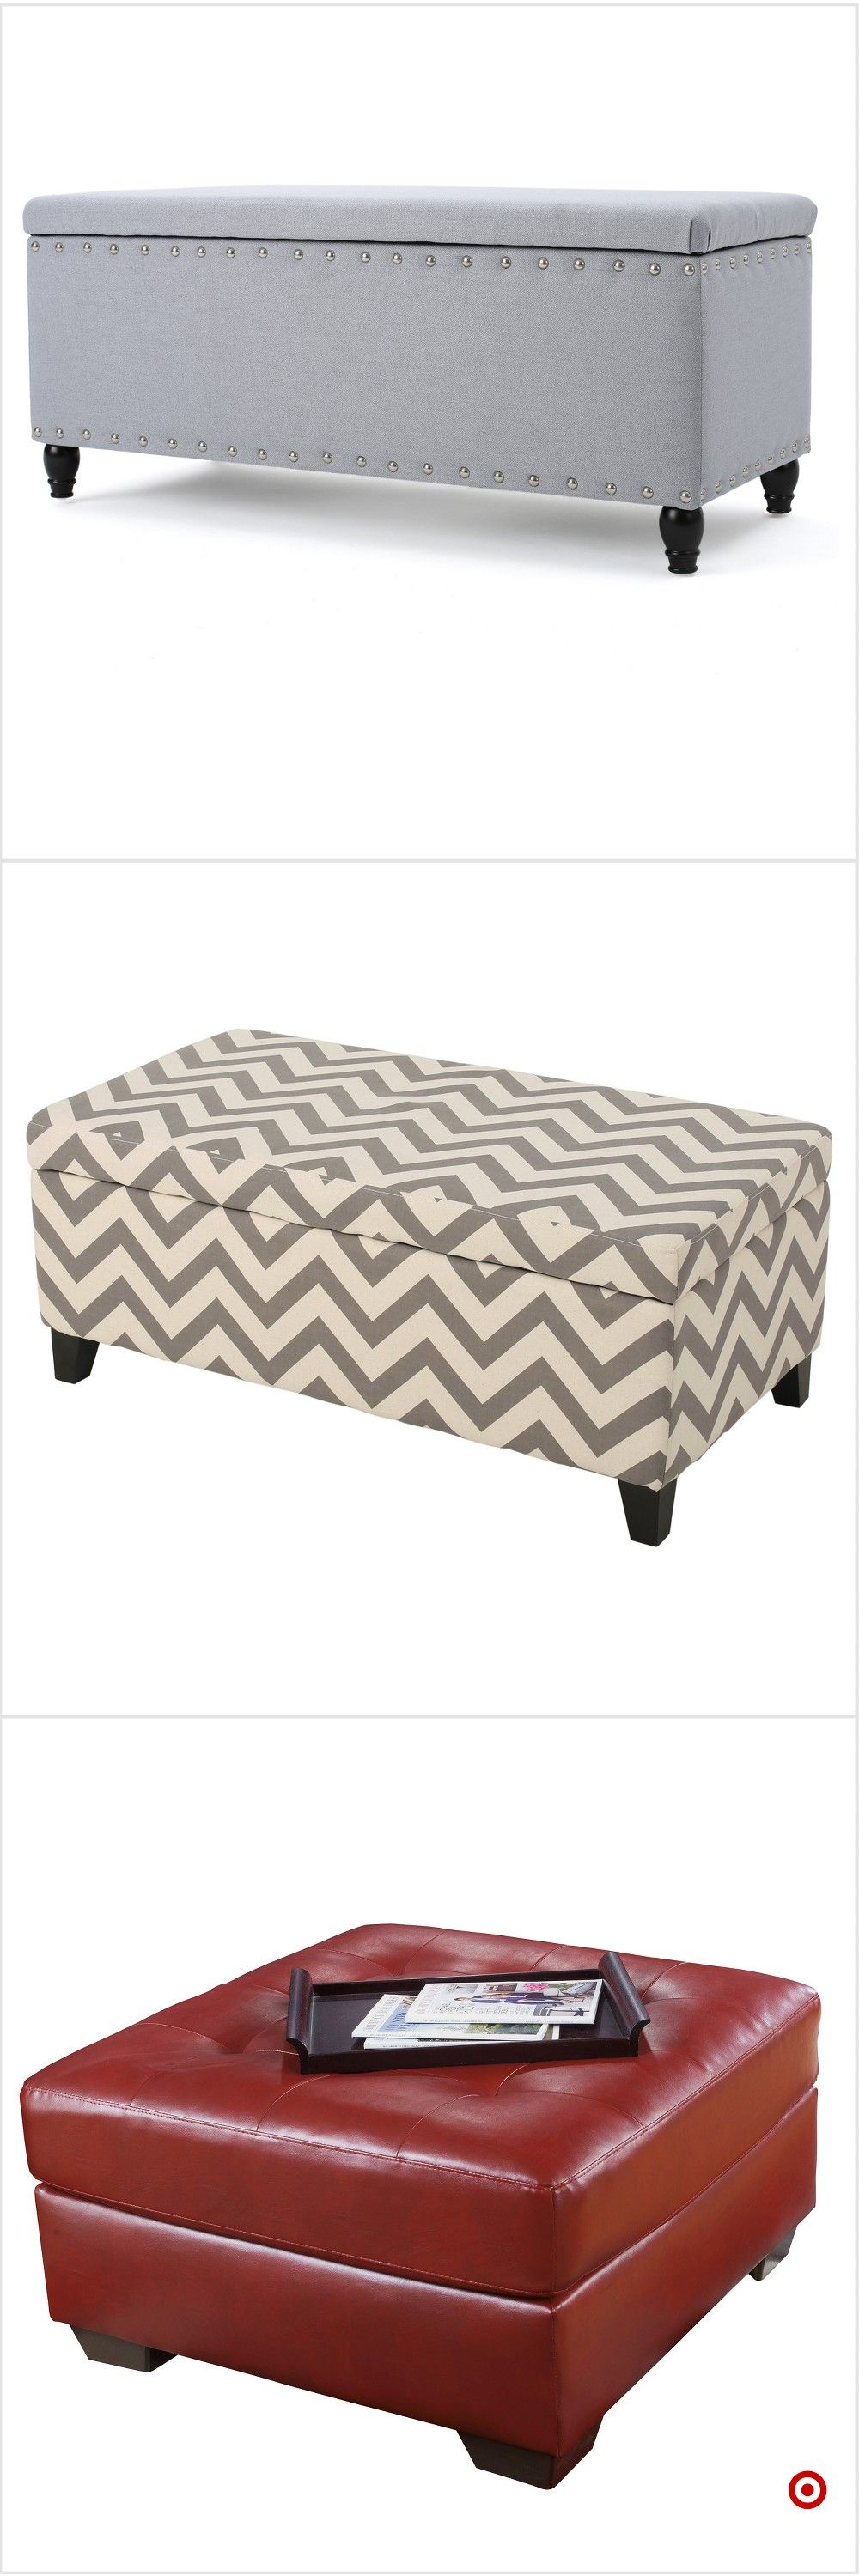 Fine Shop Target For Ottomans You Will Love At Great Low Prices Alphanode Cool Chair Designs And Ideas Alphanodeonline